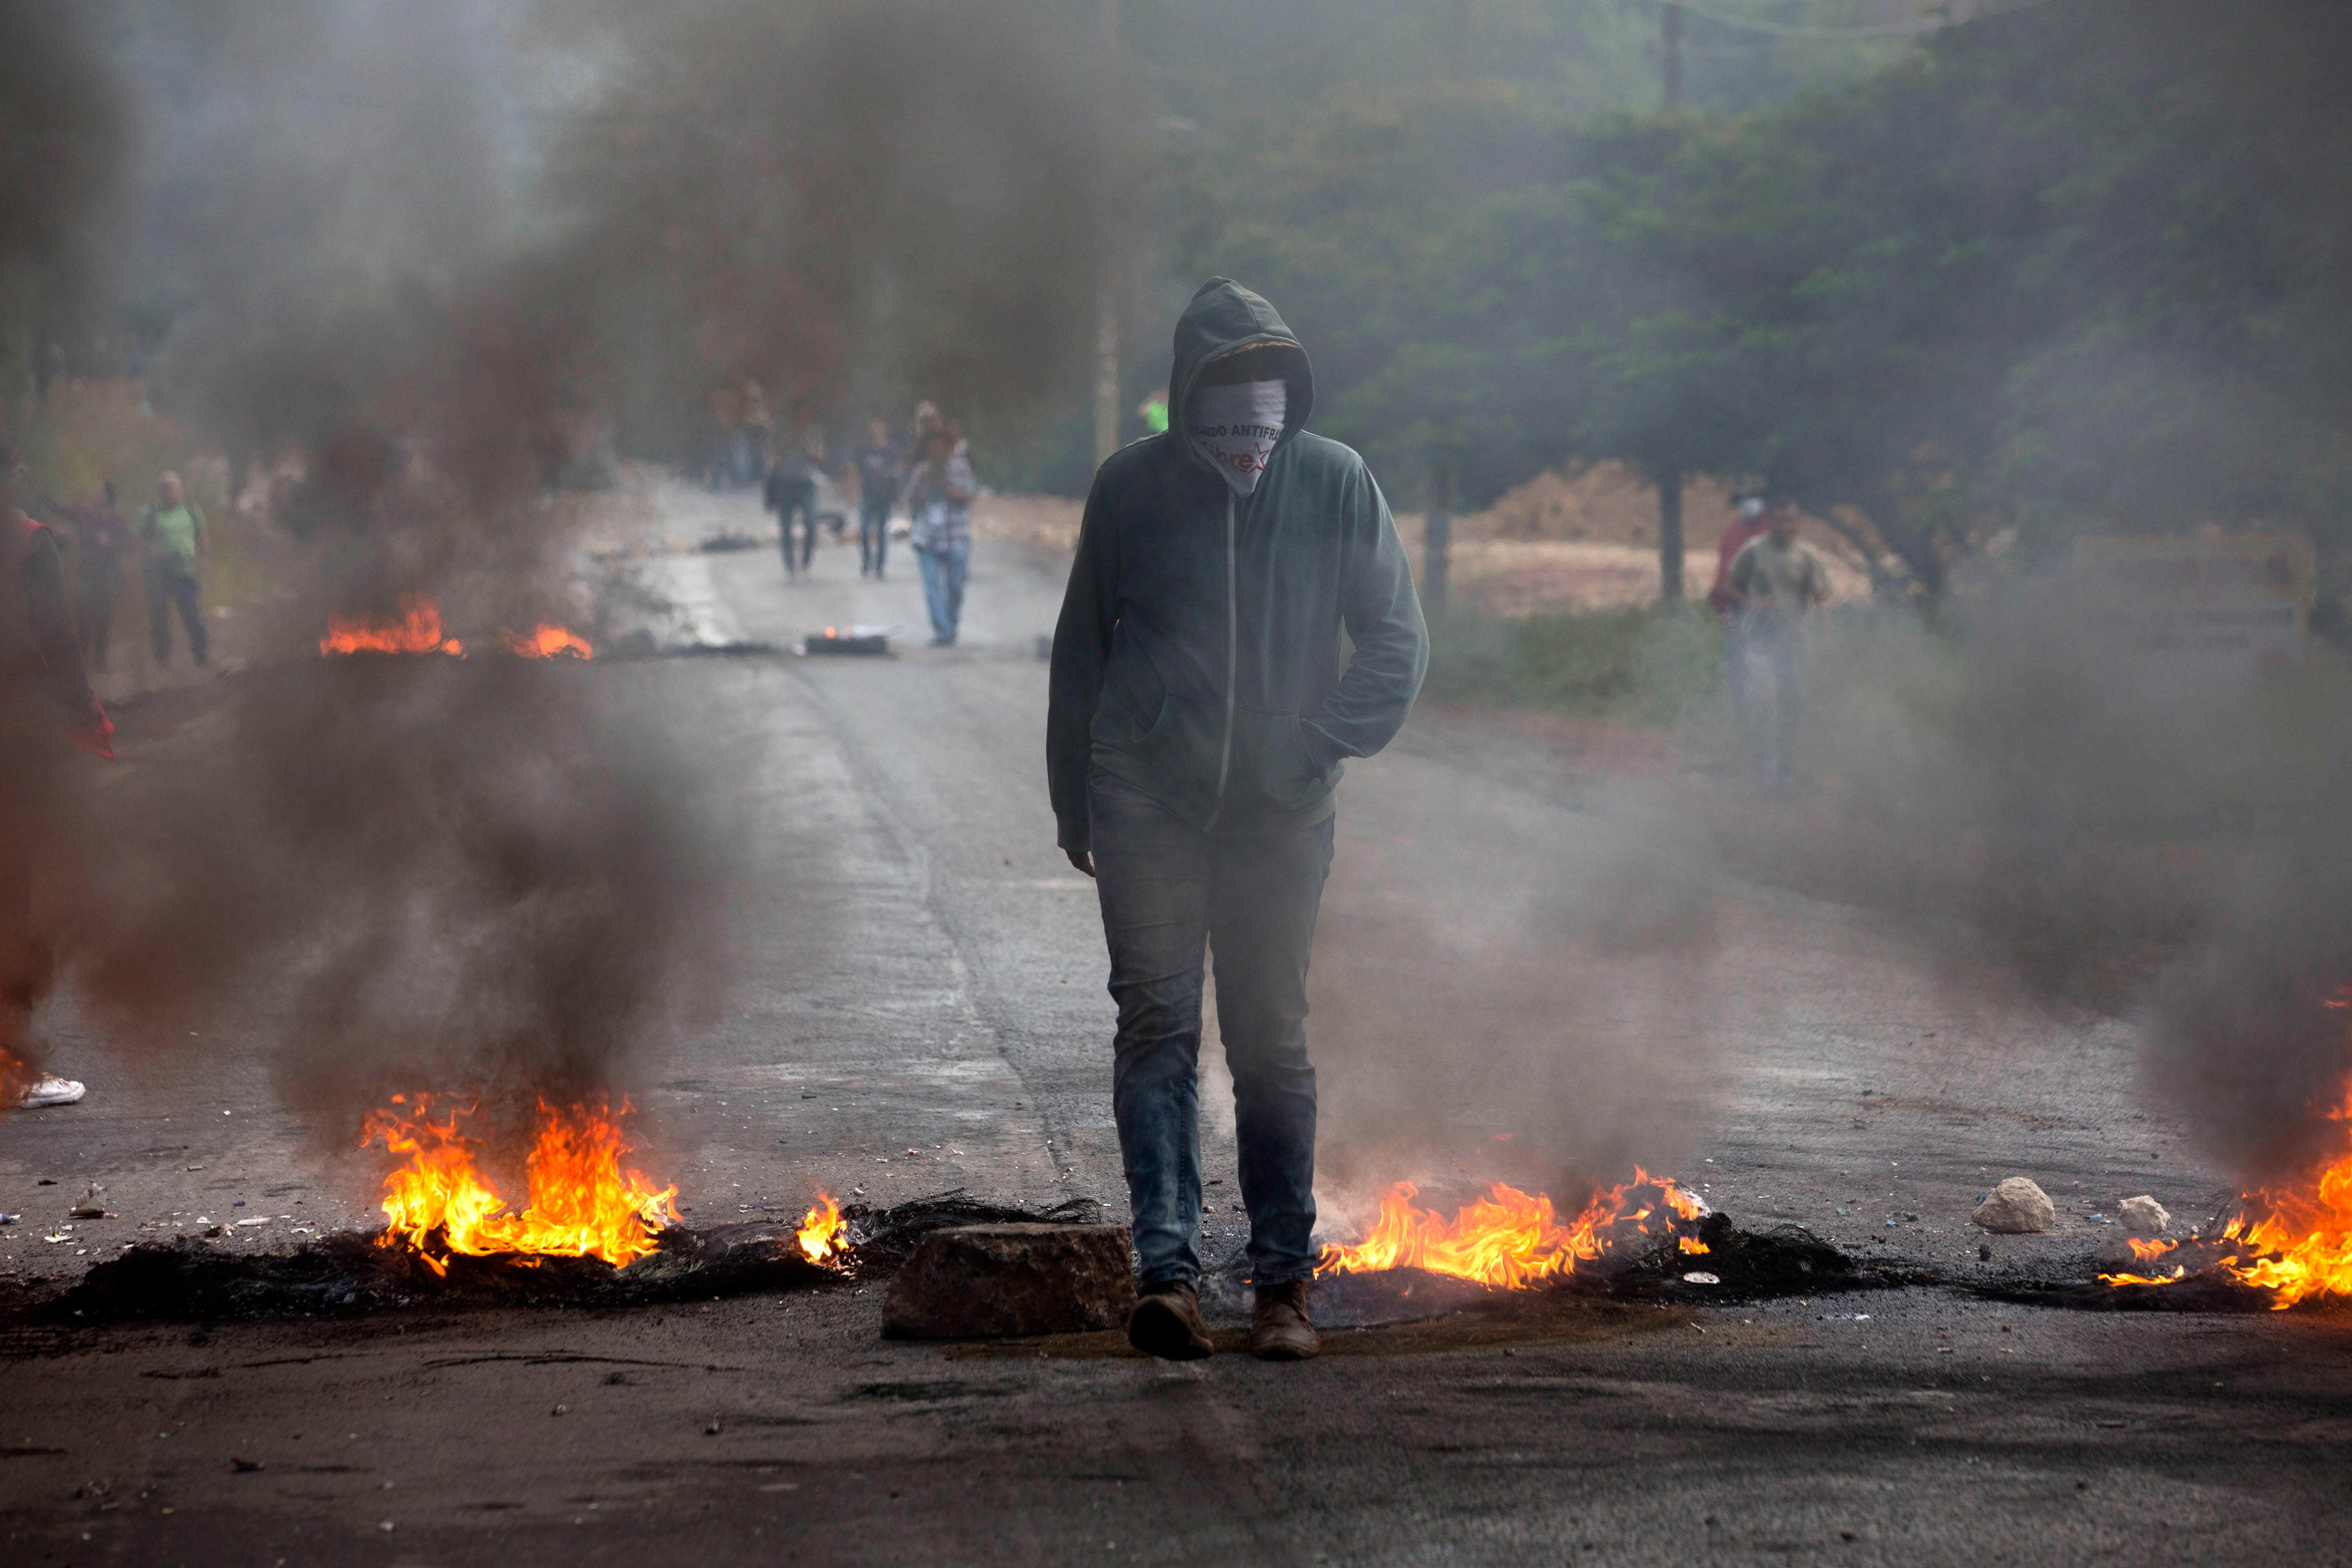 An anti-government protestor stands at a burning barricade erected by protesters to block the road to Valle de los Angeles, on the outskirts of Tegucigalpa, Honduras, Thursday, Dec. 7, 2017. Eight Latin American governments on Wednesday applauded Honduras' willingness to recount disputed votes in the presidential elections, but questions remain about how thorough that recount will be. (AP Photo/Moises Castillo)